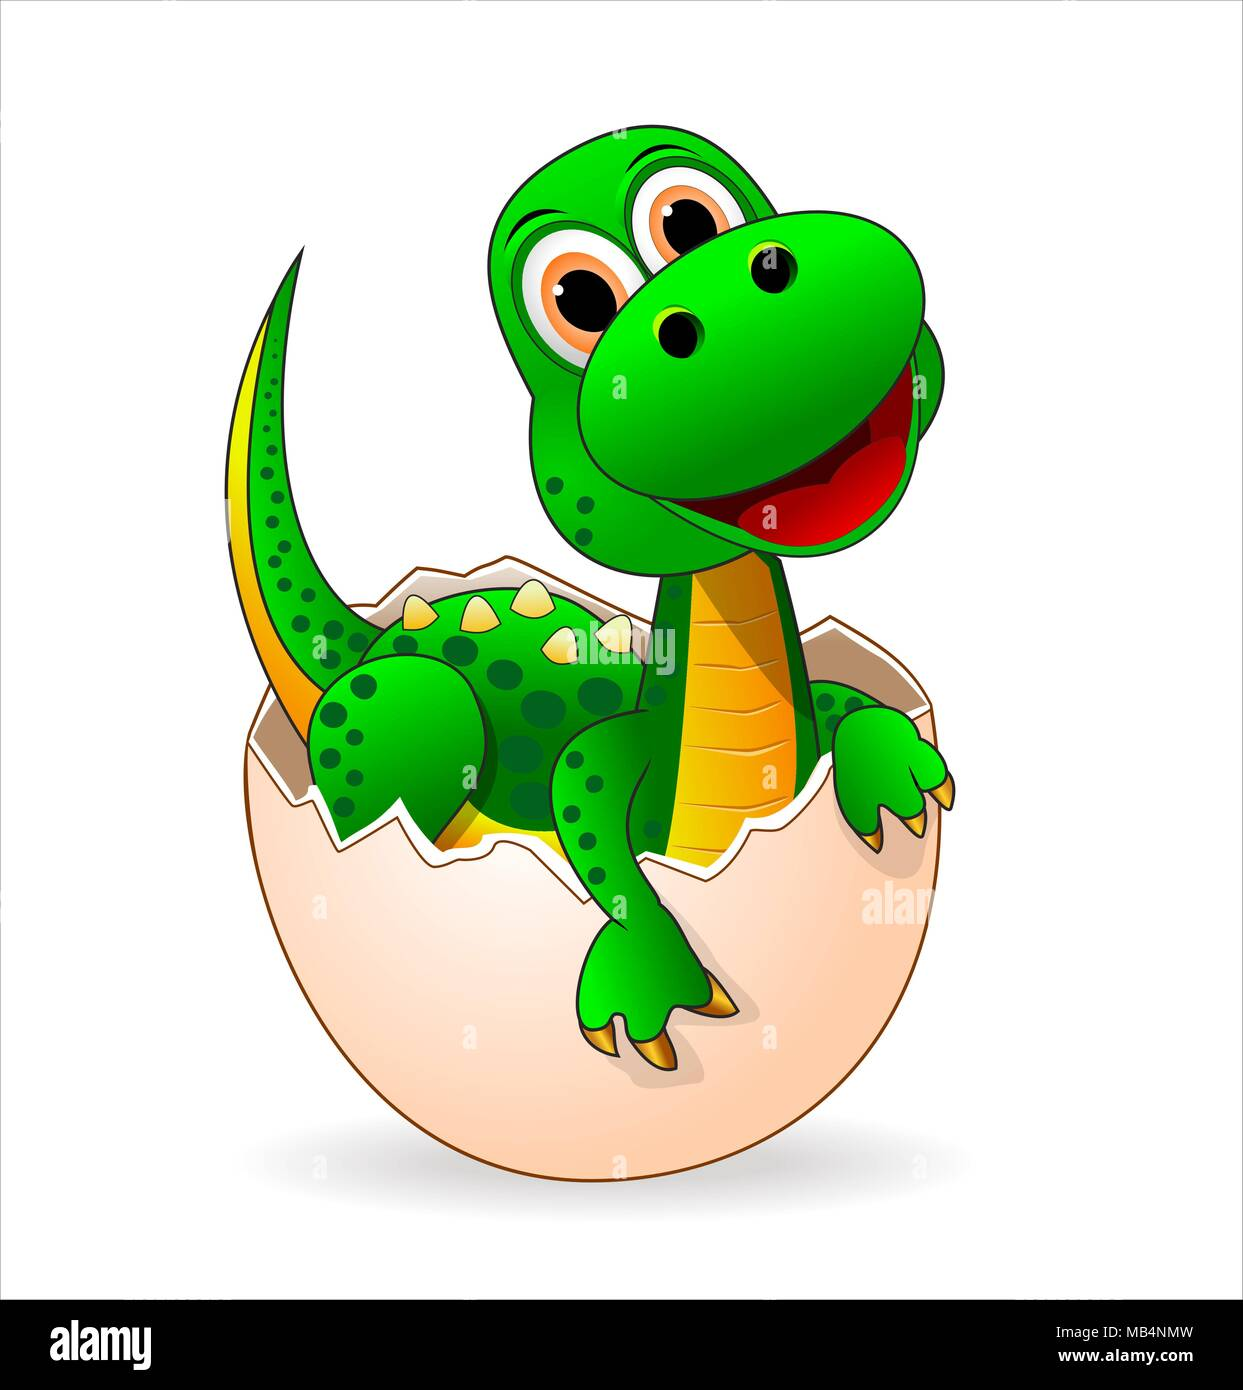 Small green dinosaur who just hatched from the egg. - Stock Vector